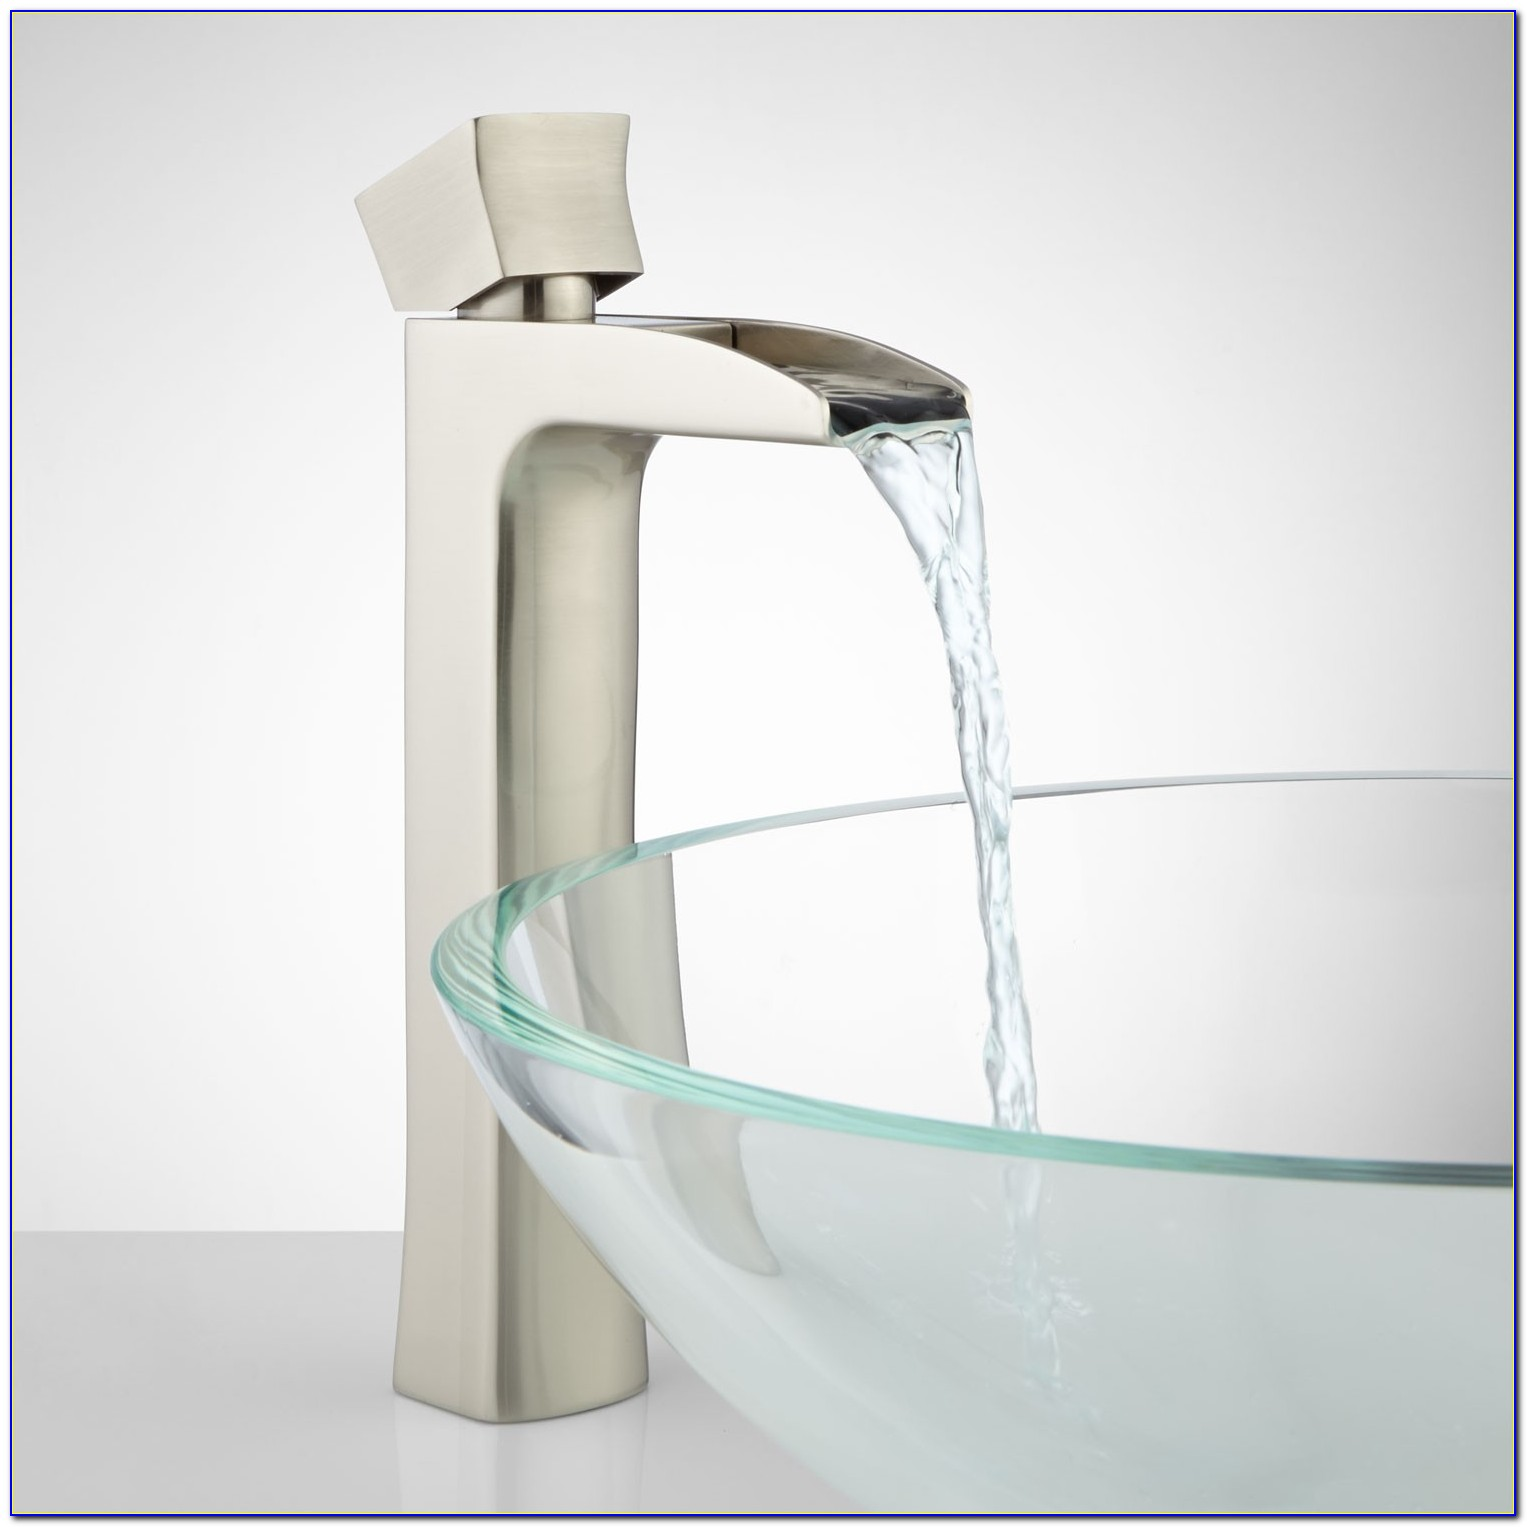 Bathroom Waterfall Faucets For Vessel Sinks